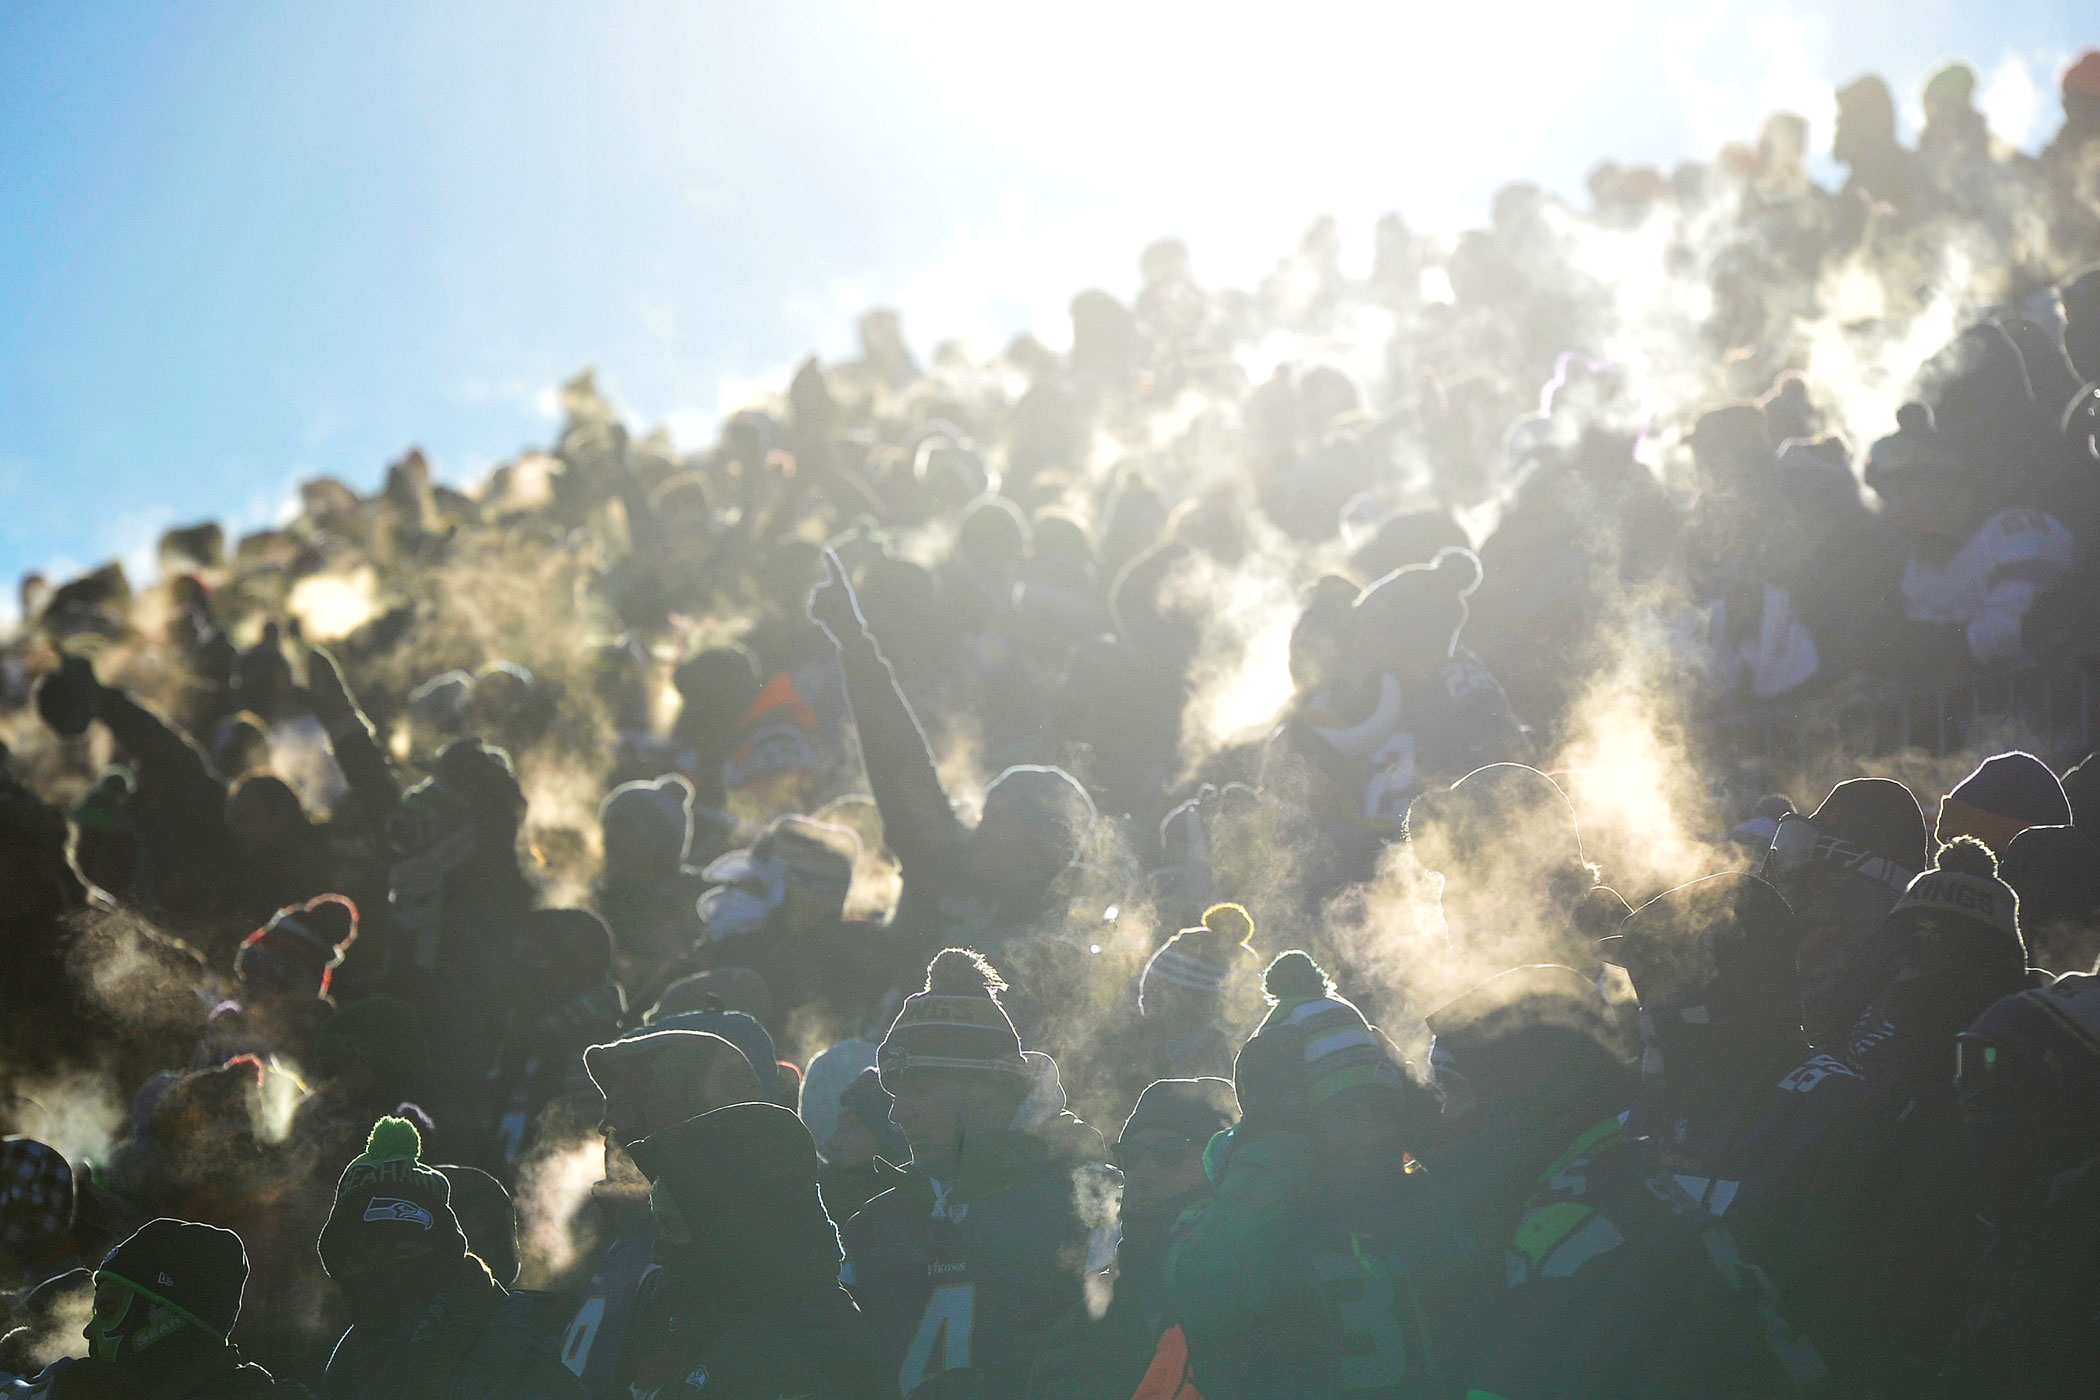 Temperature: -6°F (Wind Chill -25°F).                               On Jan. 10, 2016, fans braved subzero temperatures at an NFL football playoff game between the Minnesota Vikings and the Seattle Seahawks at TCFBank Stadium in Minneapolis.